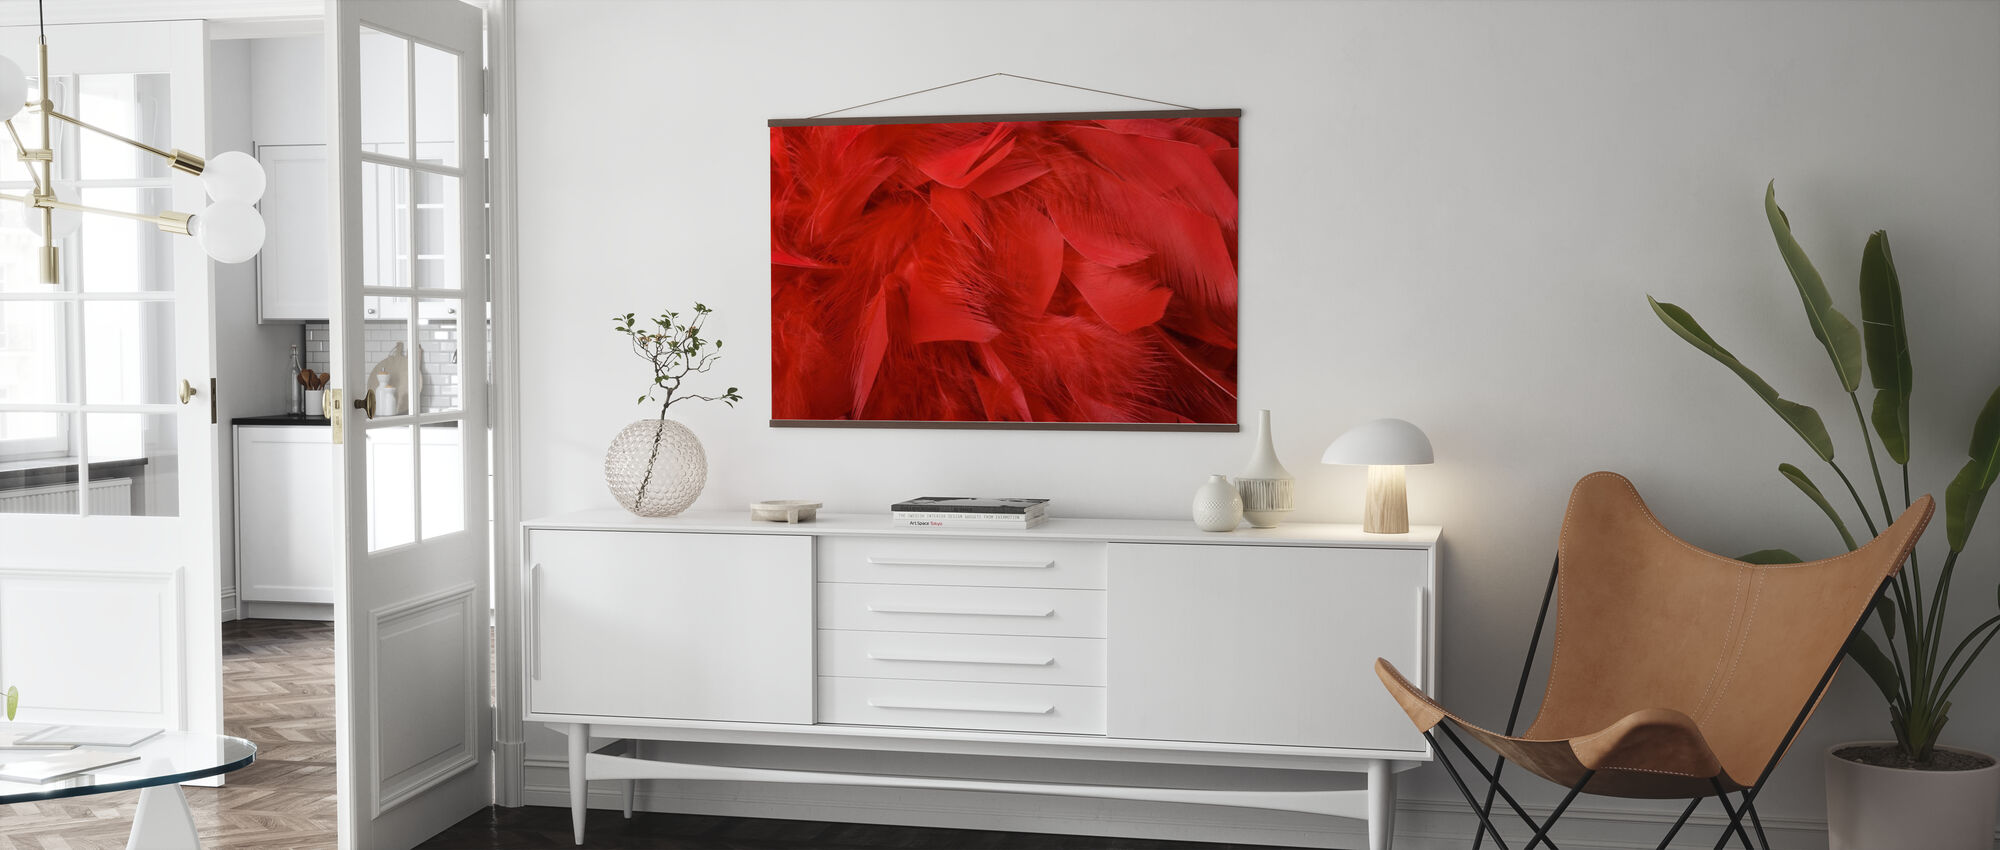 Red Feathers - Poster - Living Room